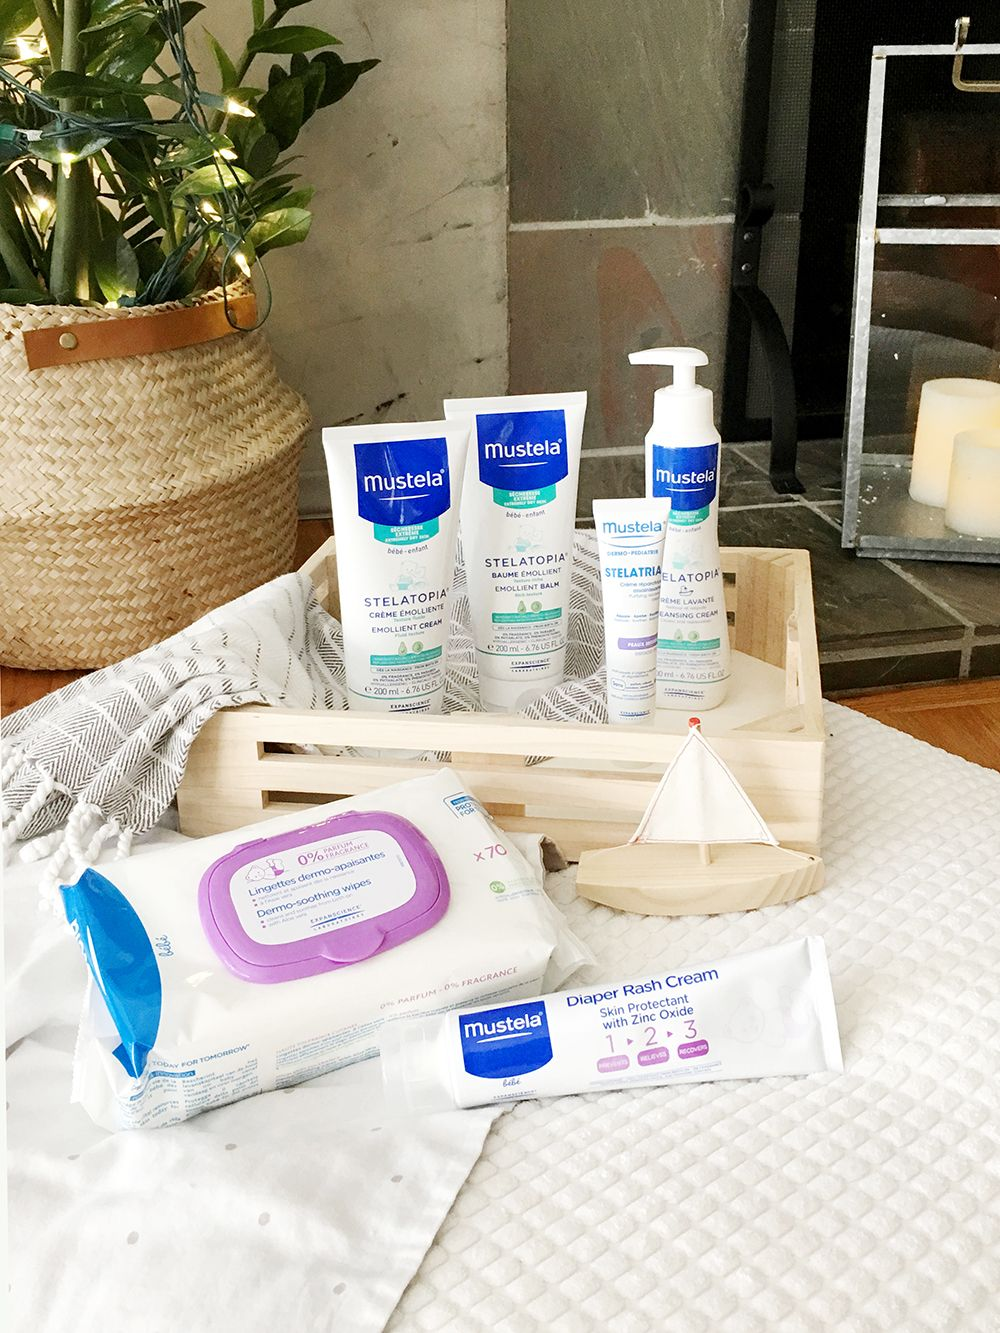 Lisa And Her Bundle Of Joy Were Gifted These Awesome Goodies From Mustela Stelatopia Emollient Cream Balm Safely Gently Cleanses Protects Babys Face Body Leaving It Feeling Soft Comfortable